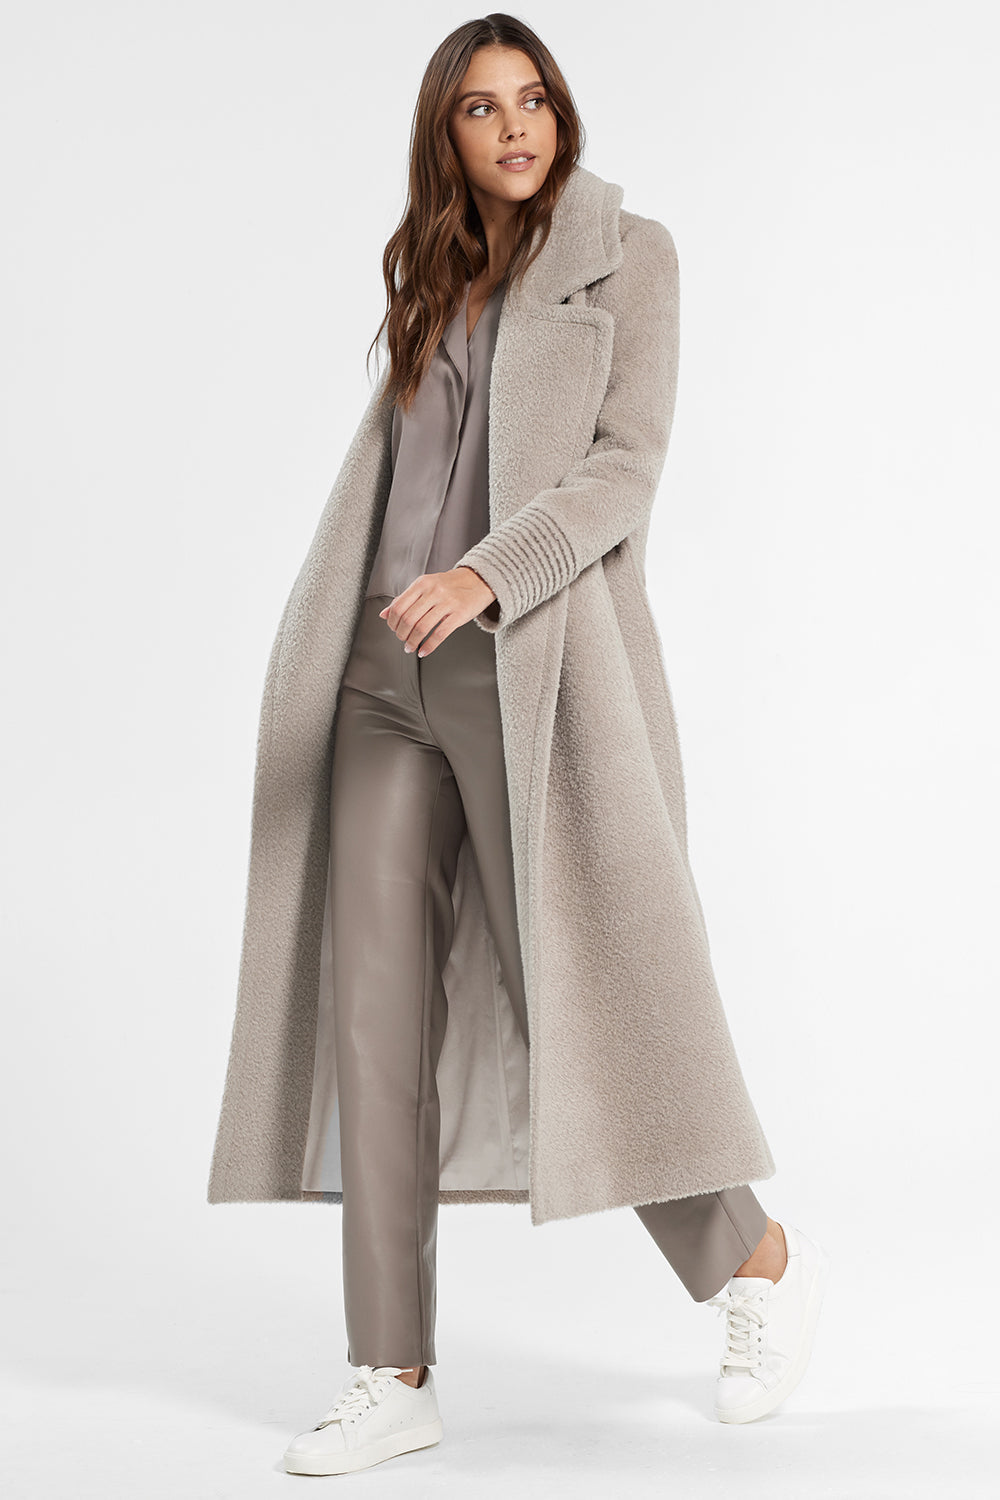 Sentaler Bouclé Alpaca Long Notched Collar Wrap Coat featured in Bouclé Alpaca and available in Sand. Seen open.